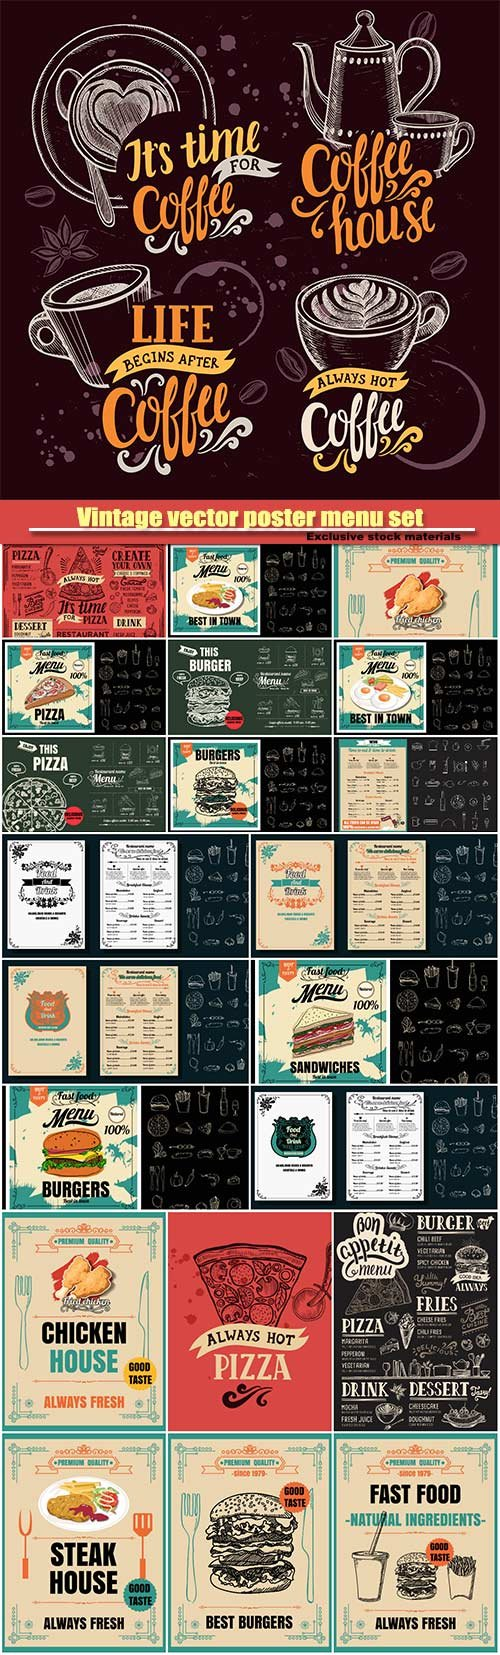 Vintage vector poster menu set